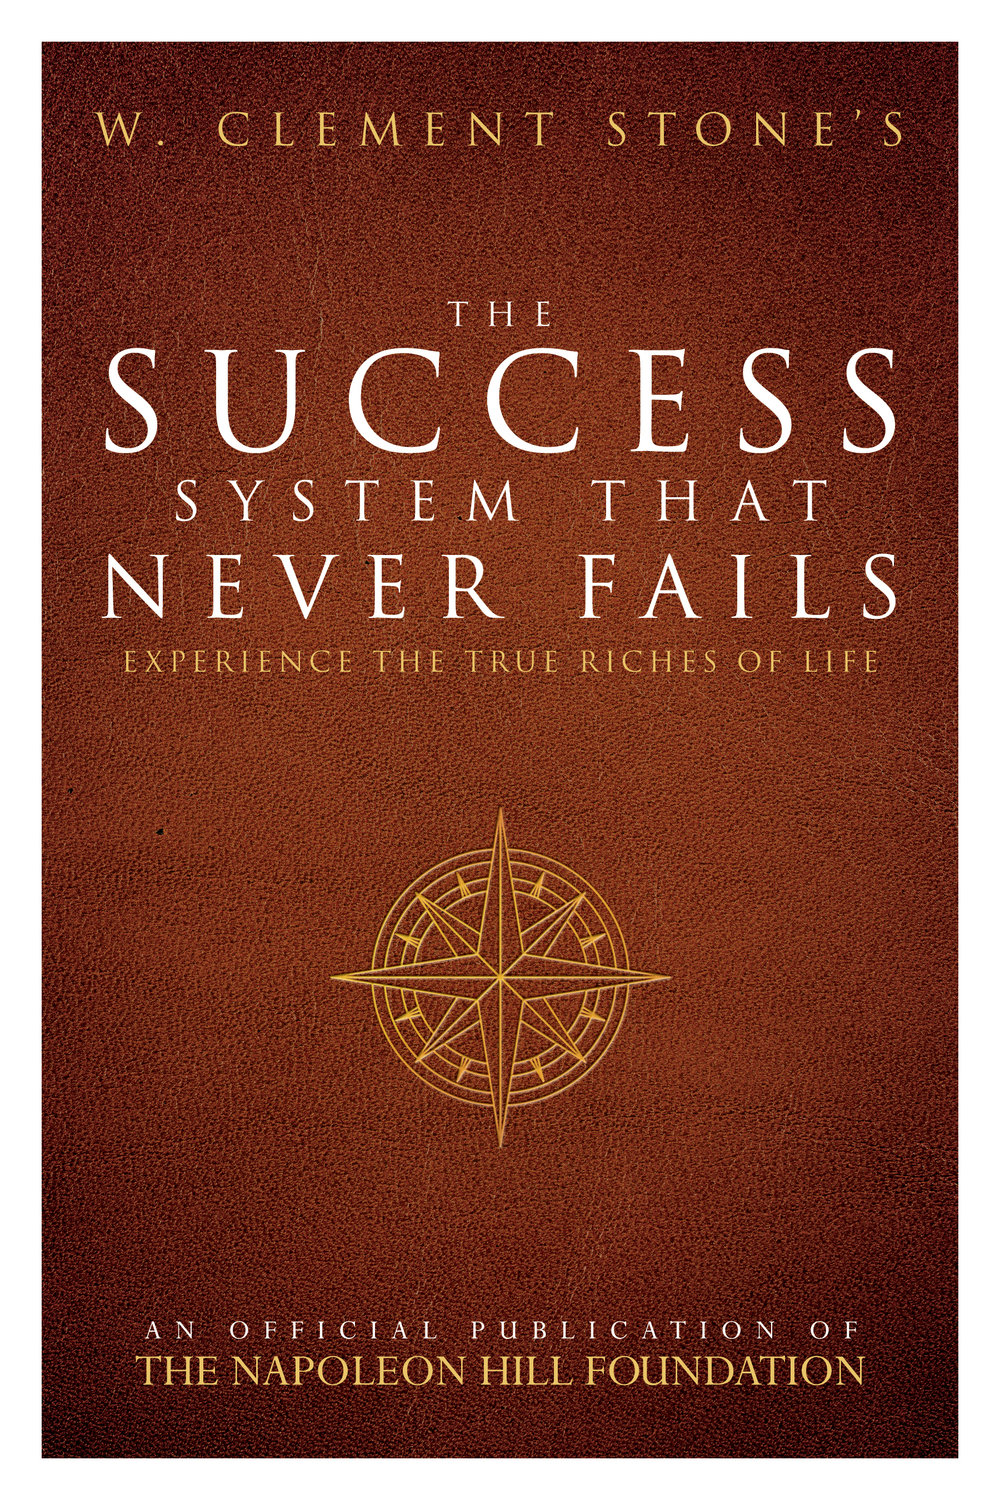 W_Clement_Stone's_The_Success_System_that_Never_Fails.jpg